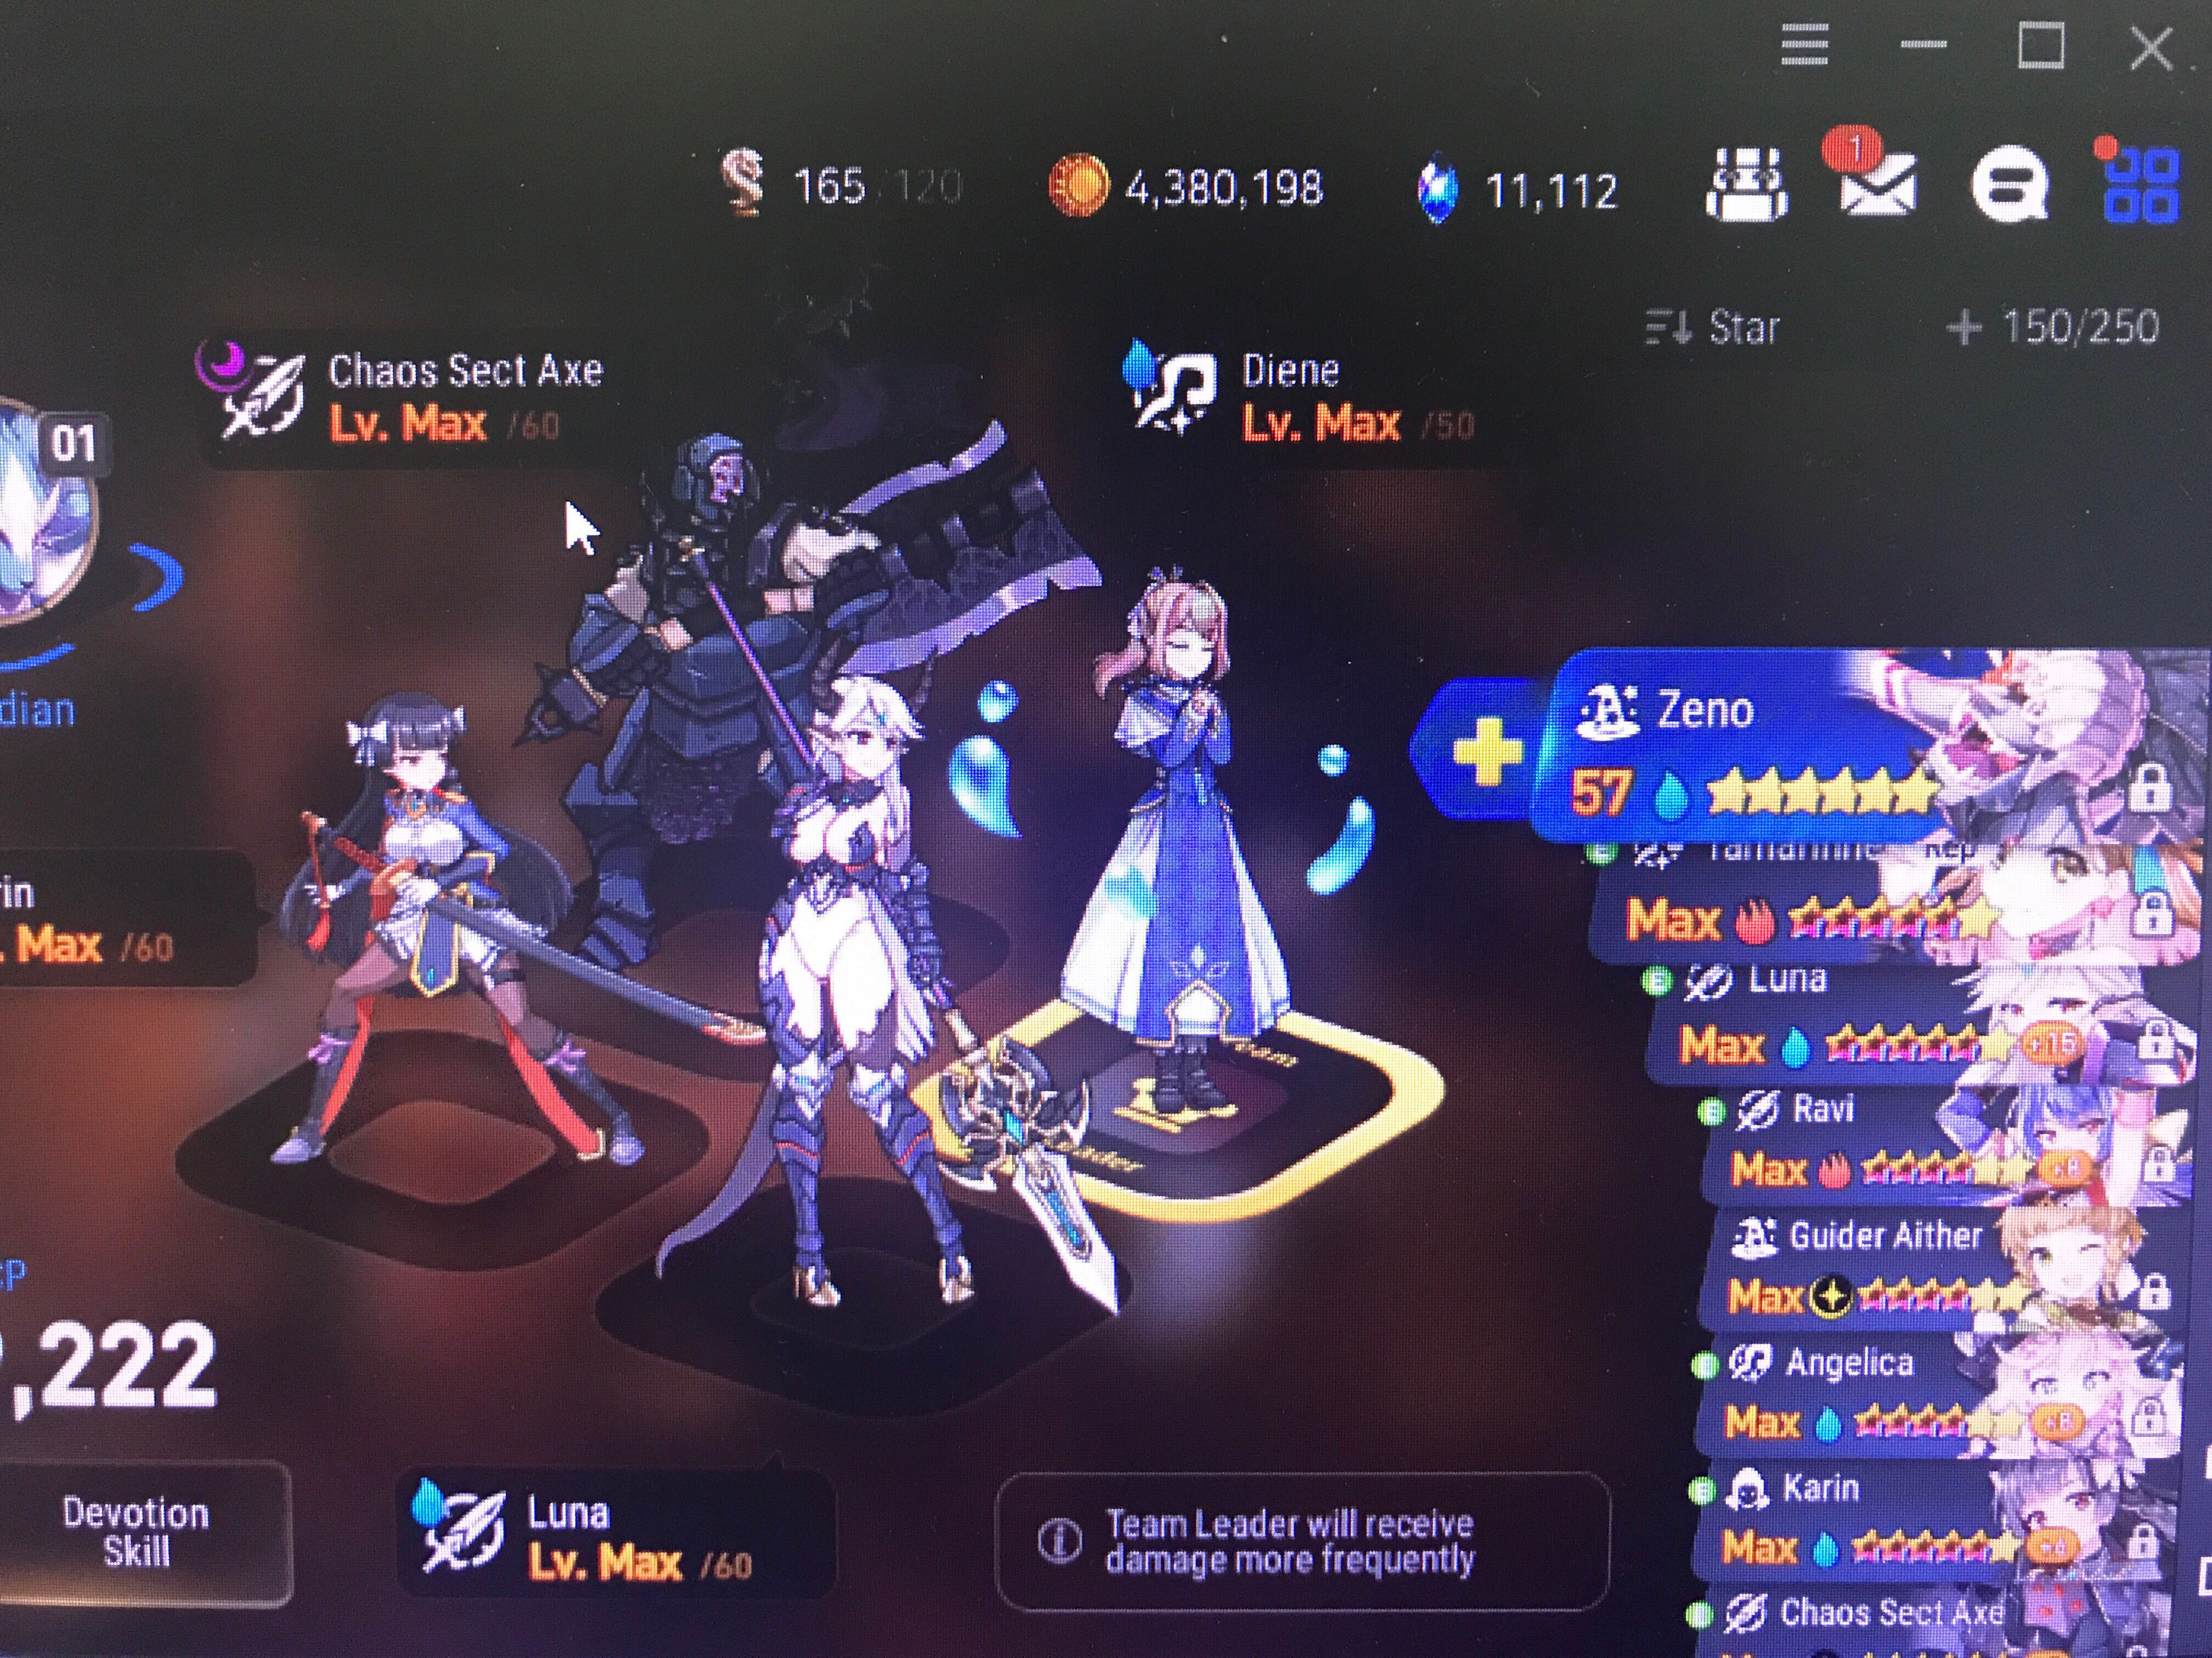 Epic 7 account with DIENE, LUNA & ANGELICA